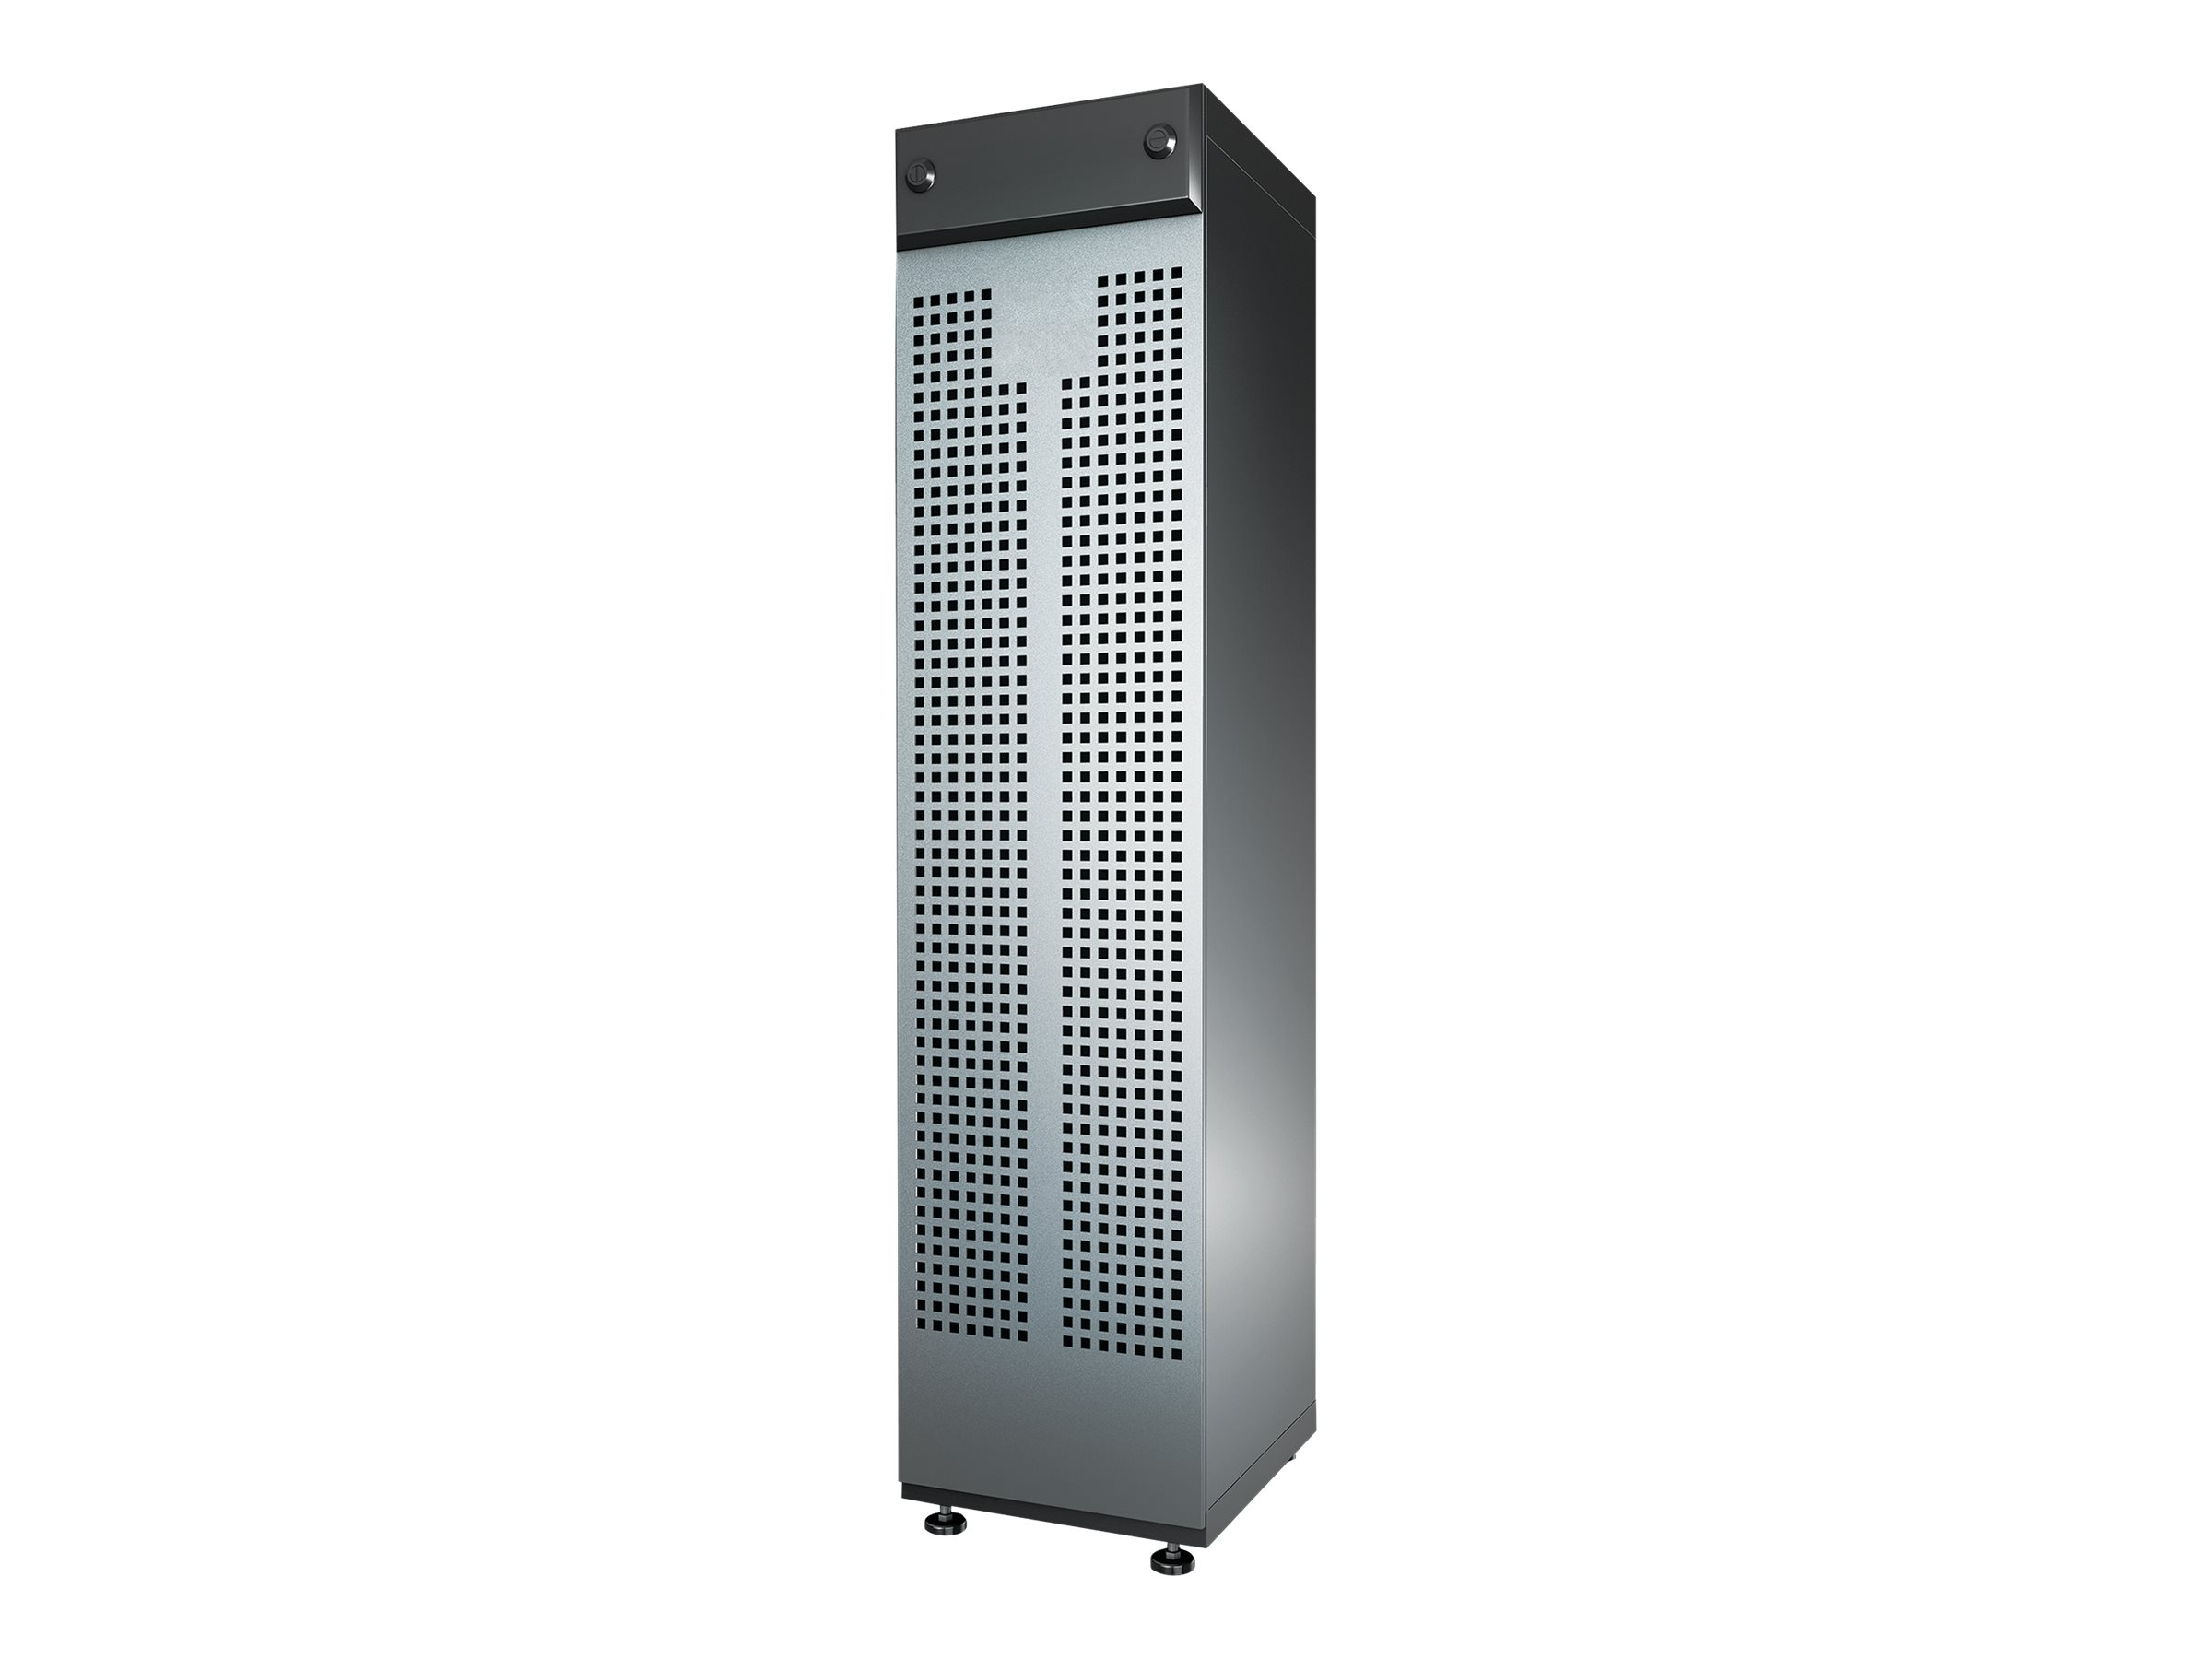 MGE Maintenance Bypass Cabinet 10-30kVA with 42 Pos. Distribution Panel - bypass switch